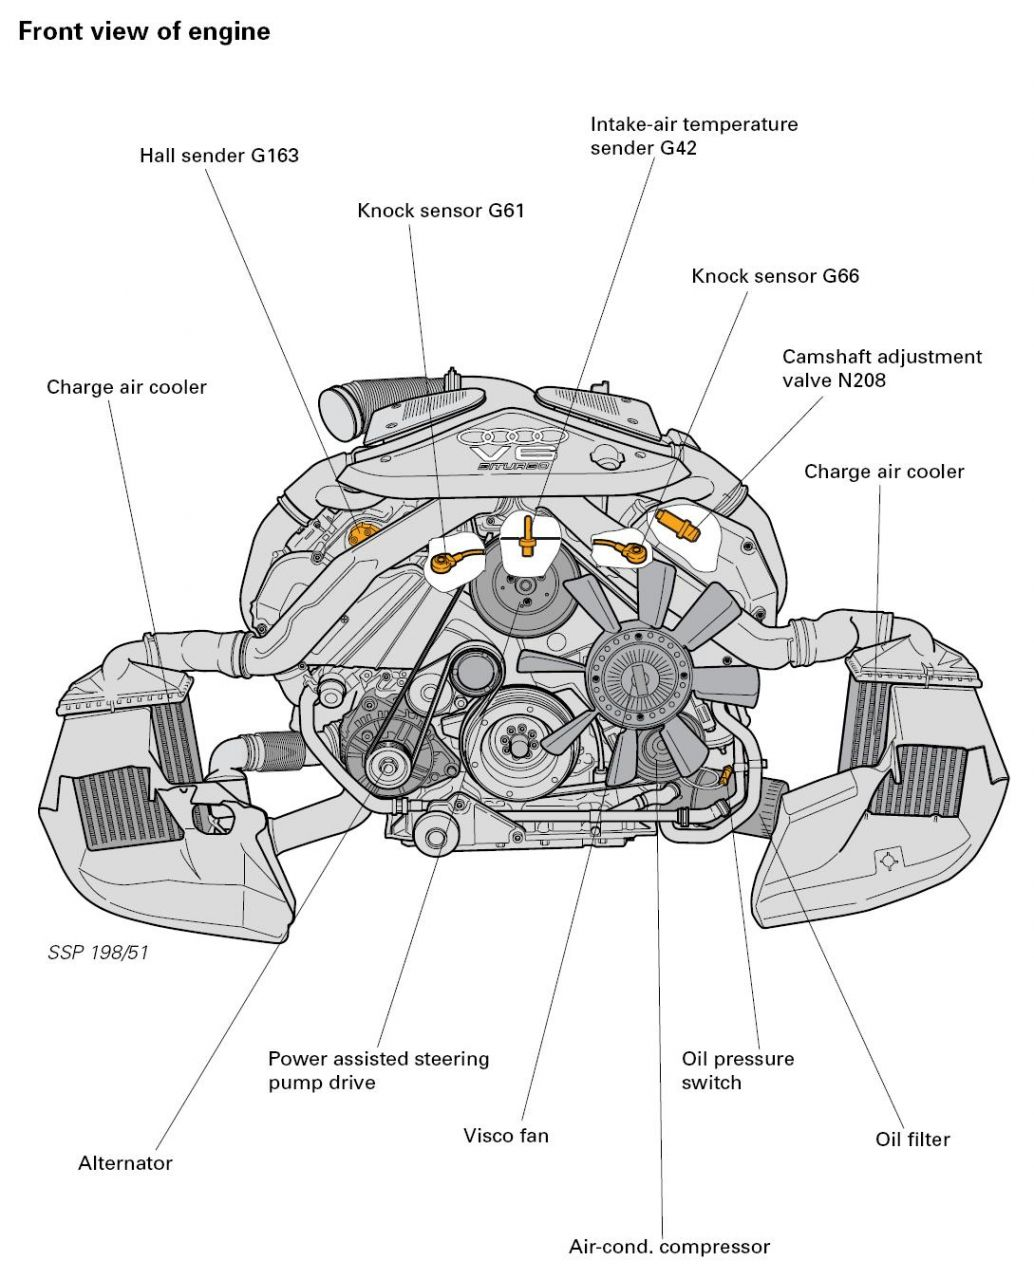 2006 Audi A6 Engine Diagram : Audi A6 Free Workshop And